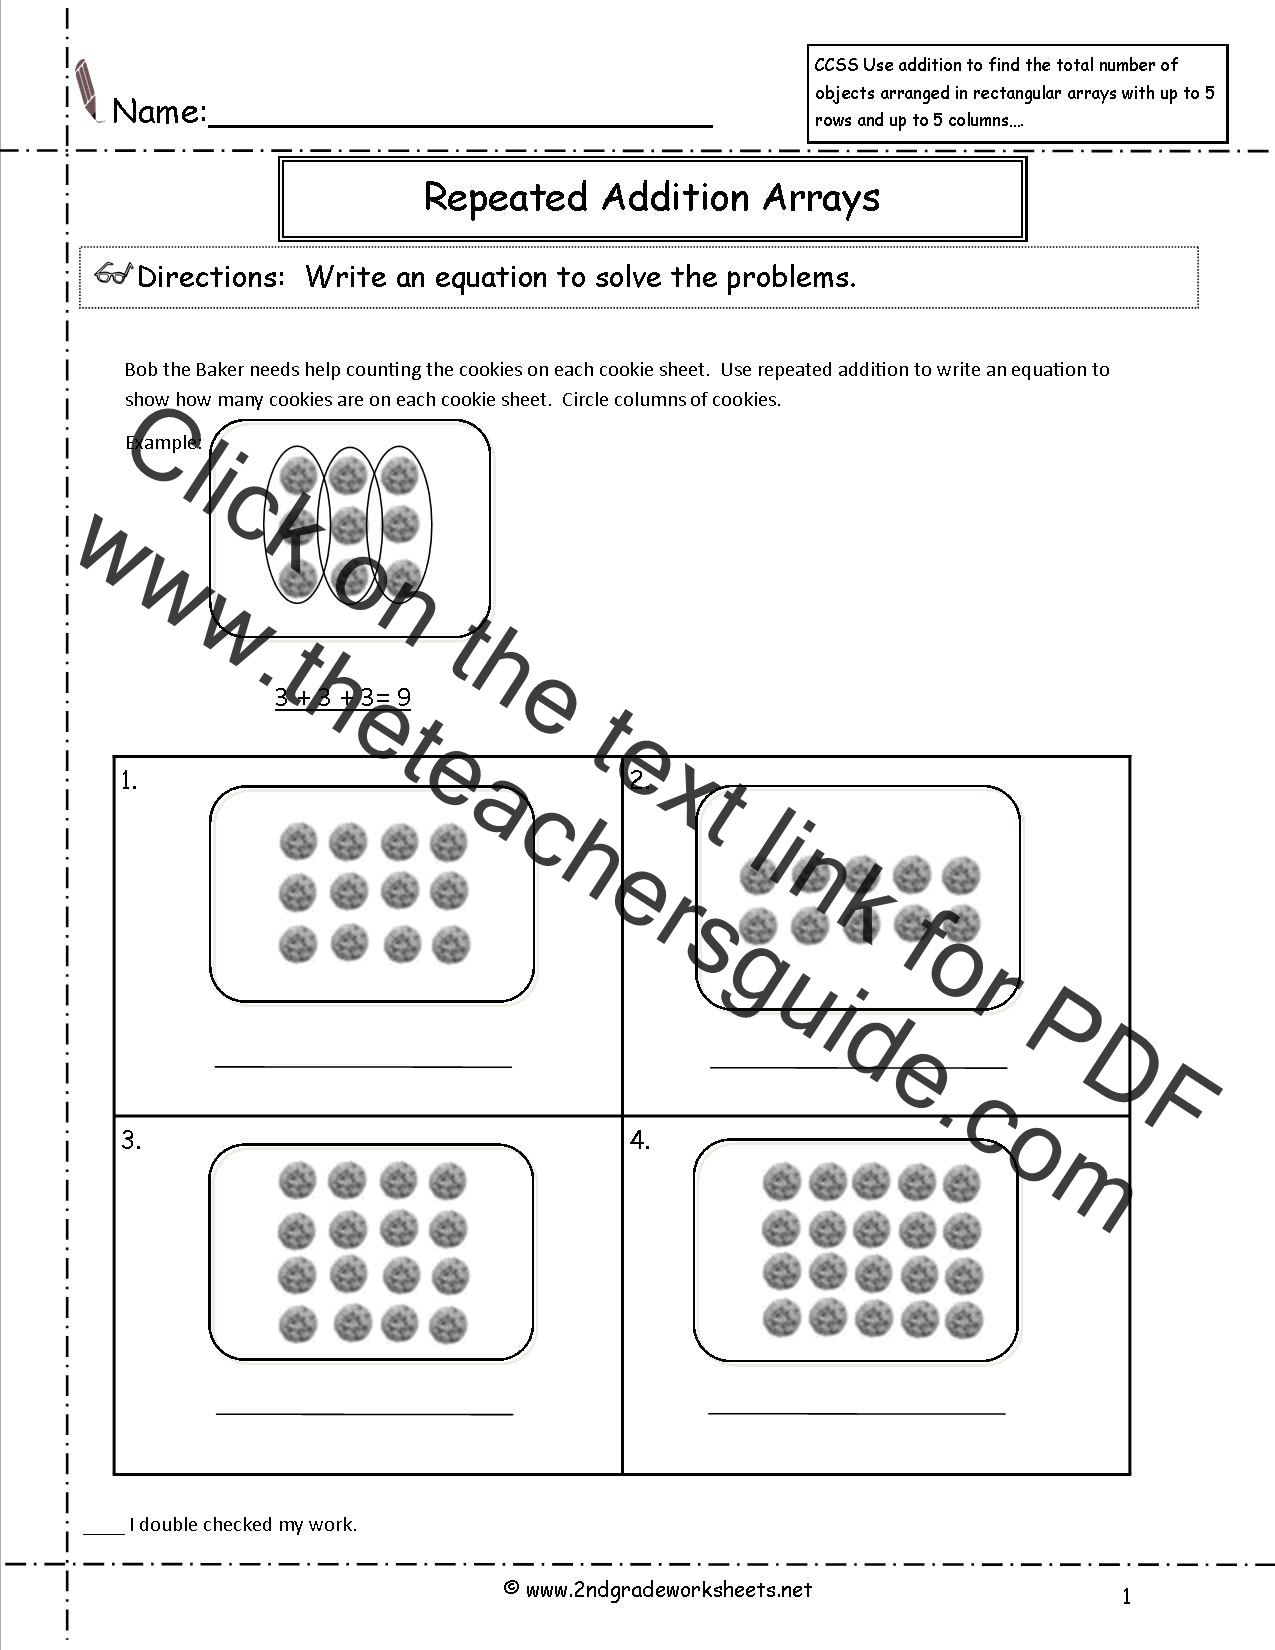 Uncategorized Common Core Practice Worksheets ccss 2 oa 4 worksheets repeated addition arrays common core